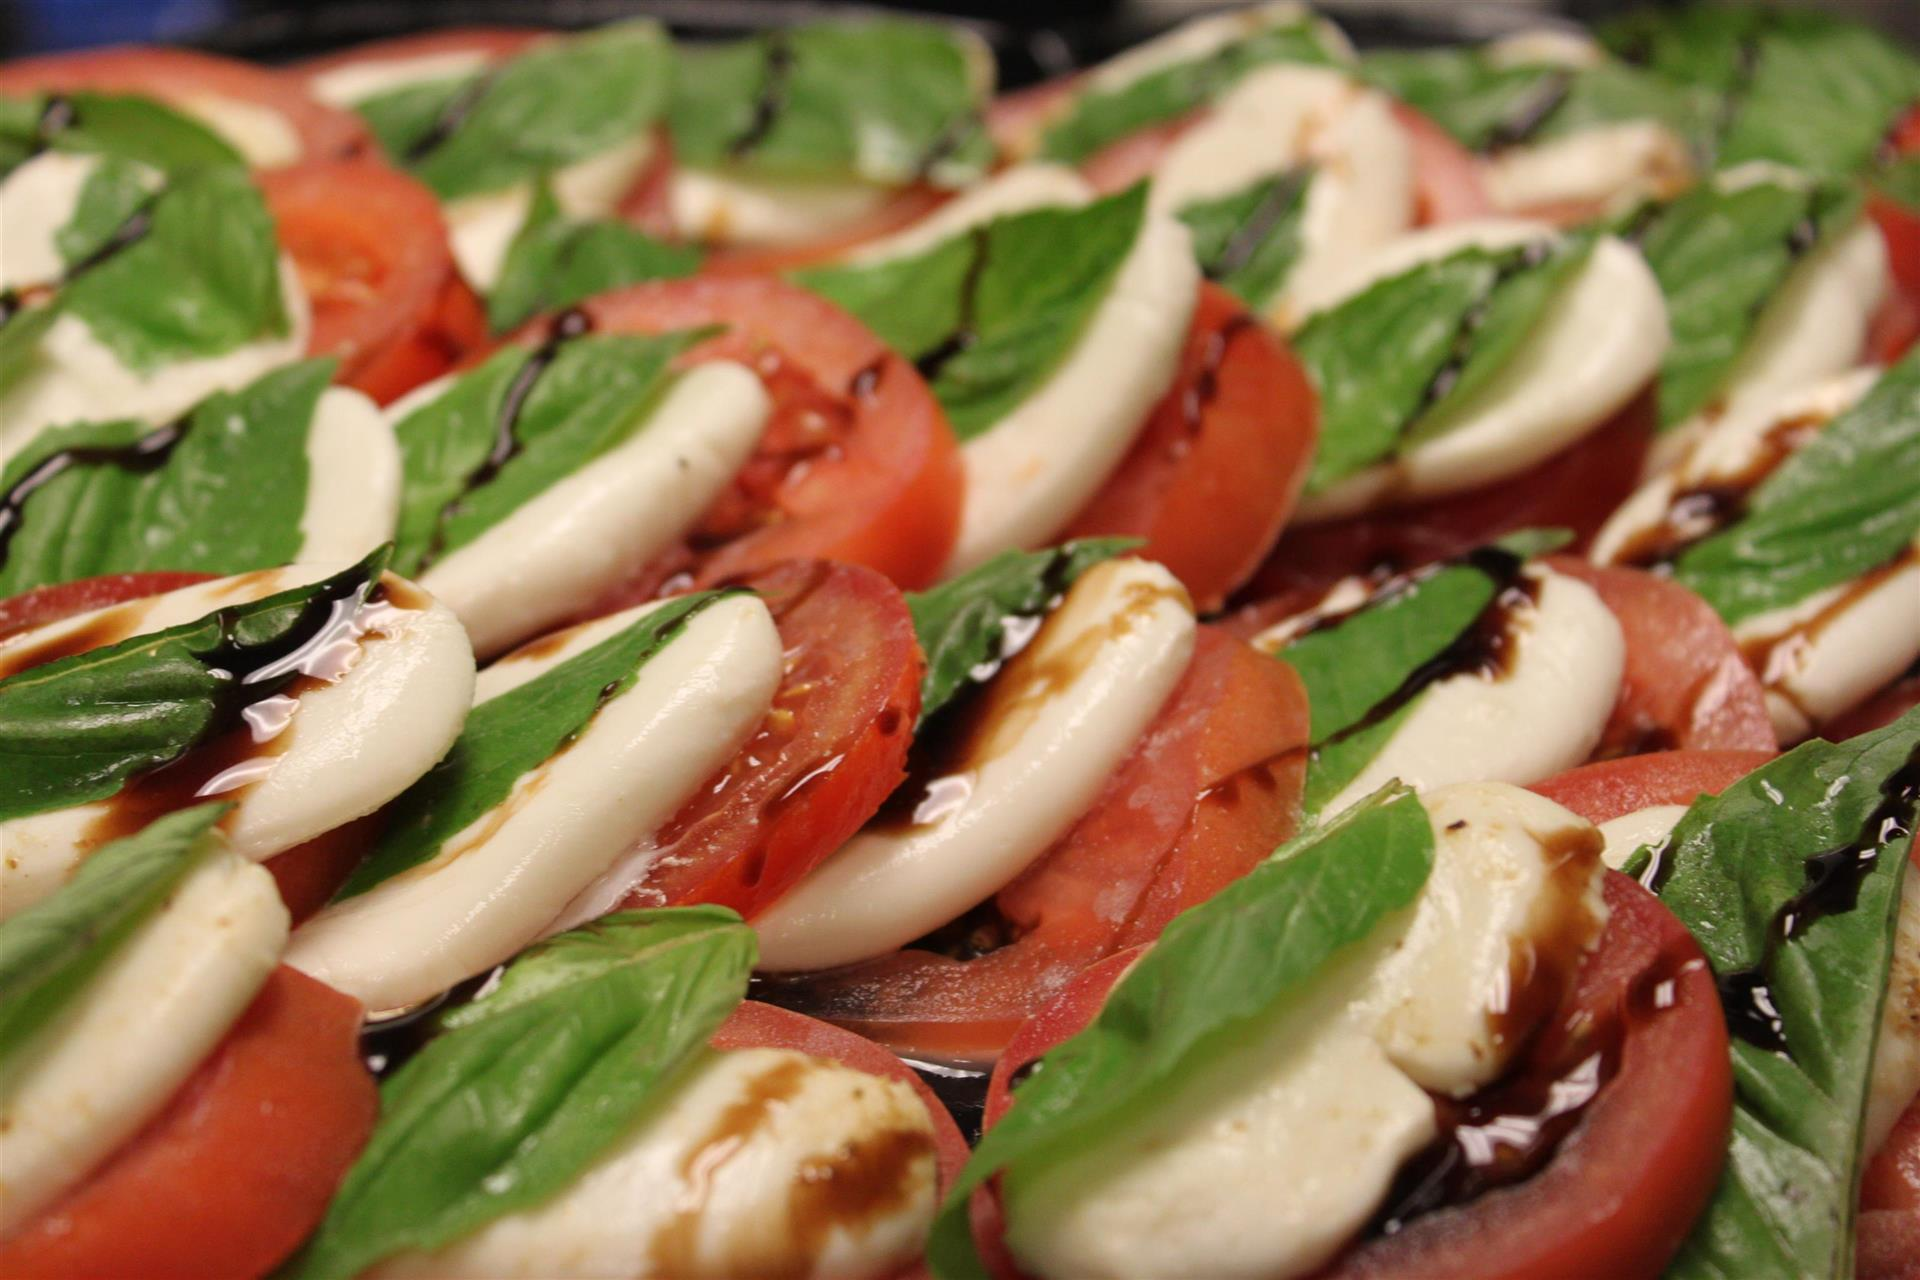 Tomatoes, fresh mozzarella, basil and a balsamic glaze